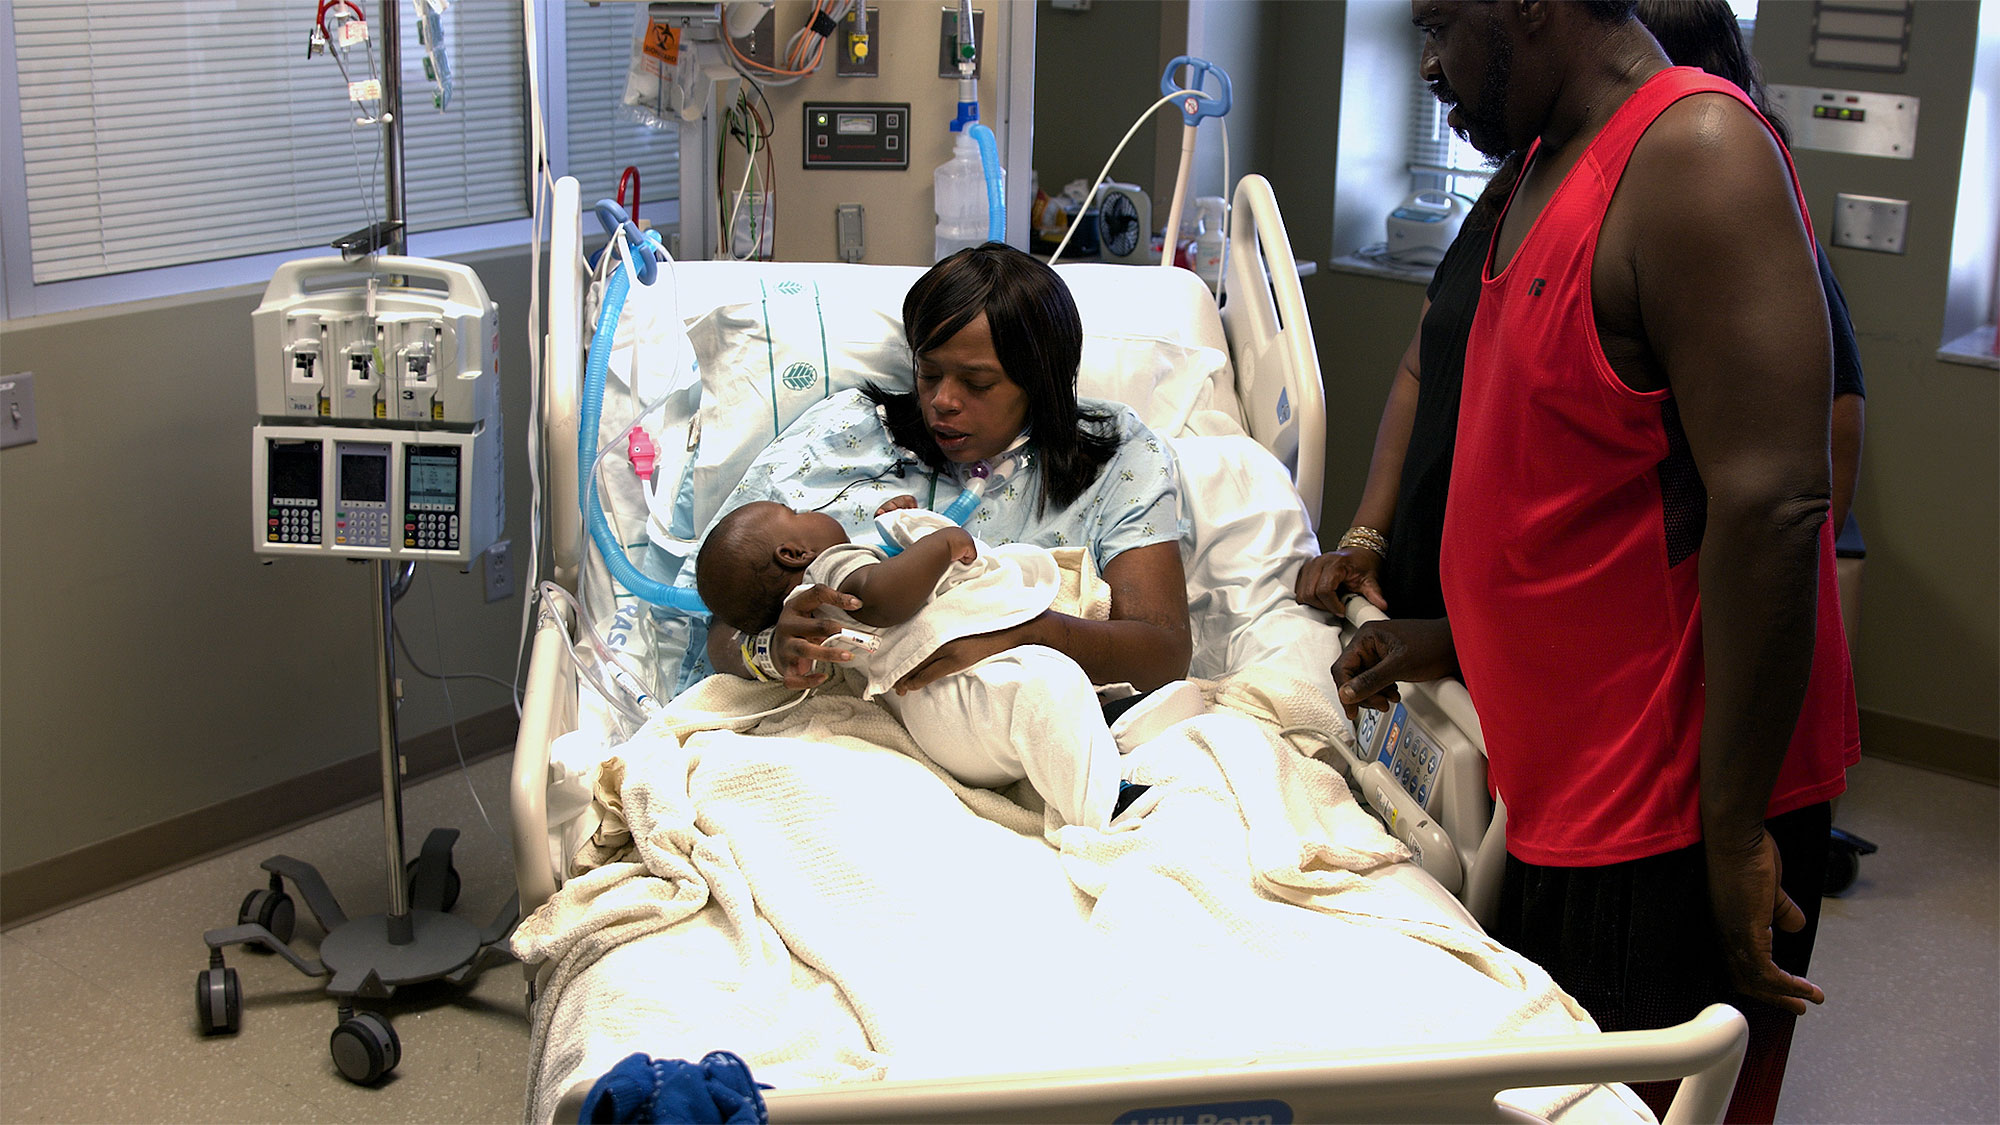 North Carolina Woman Delivers Baby and Undergoes Open-Heart Surgery at the Same Time: 'I Thought I Was Dying'